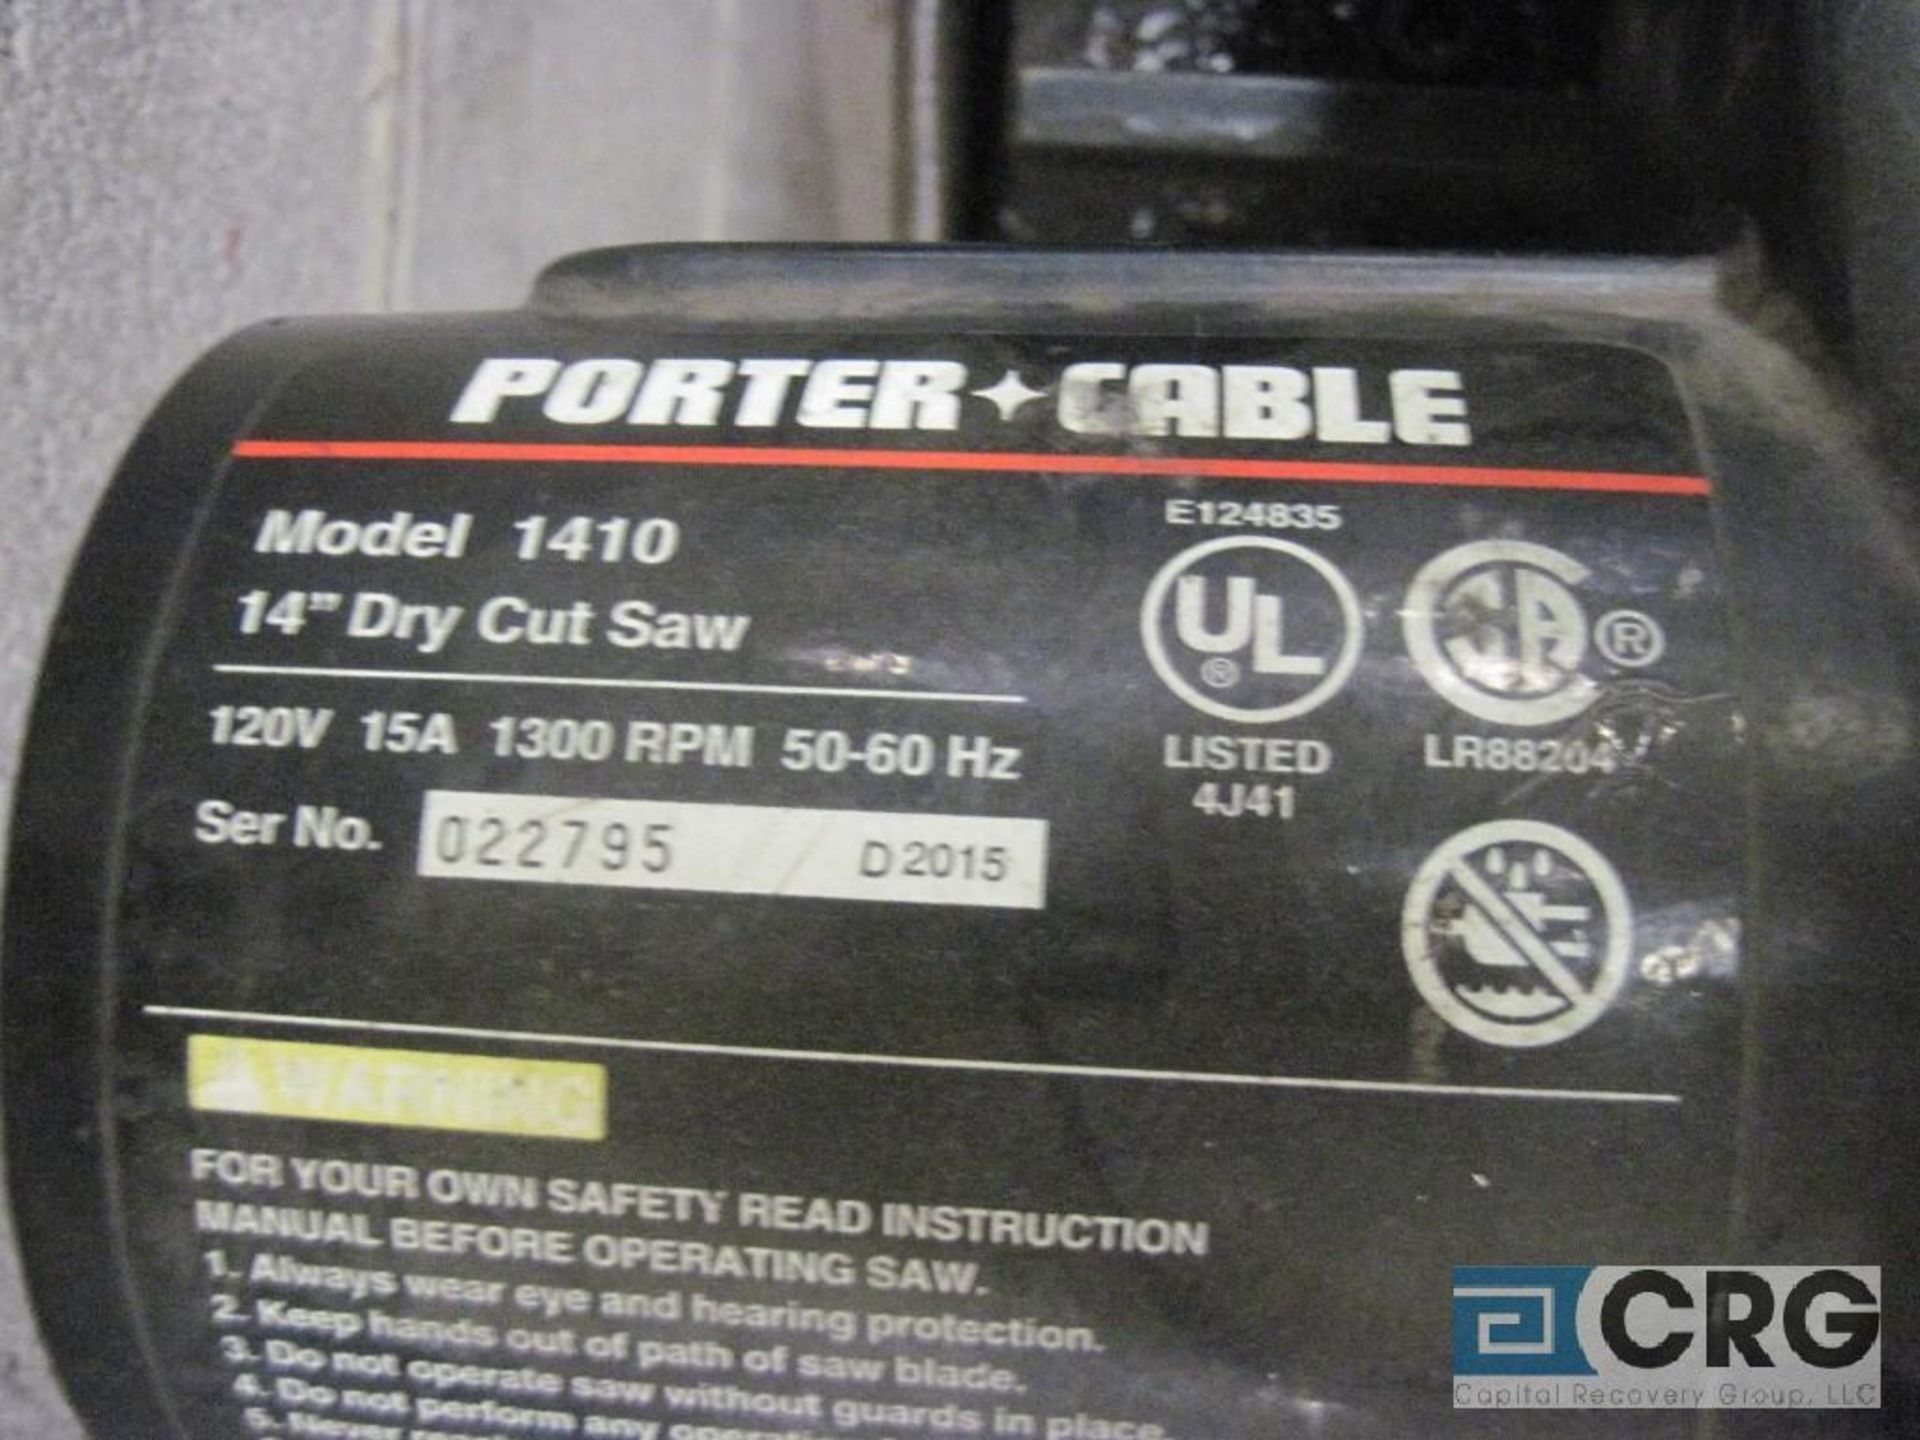 """Porter Cable 14"""" chop saw with cart, s/n 022795 - Image 2 of 2"""